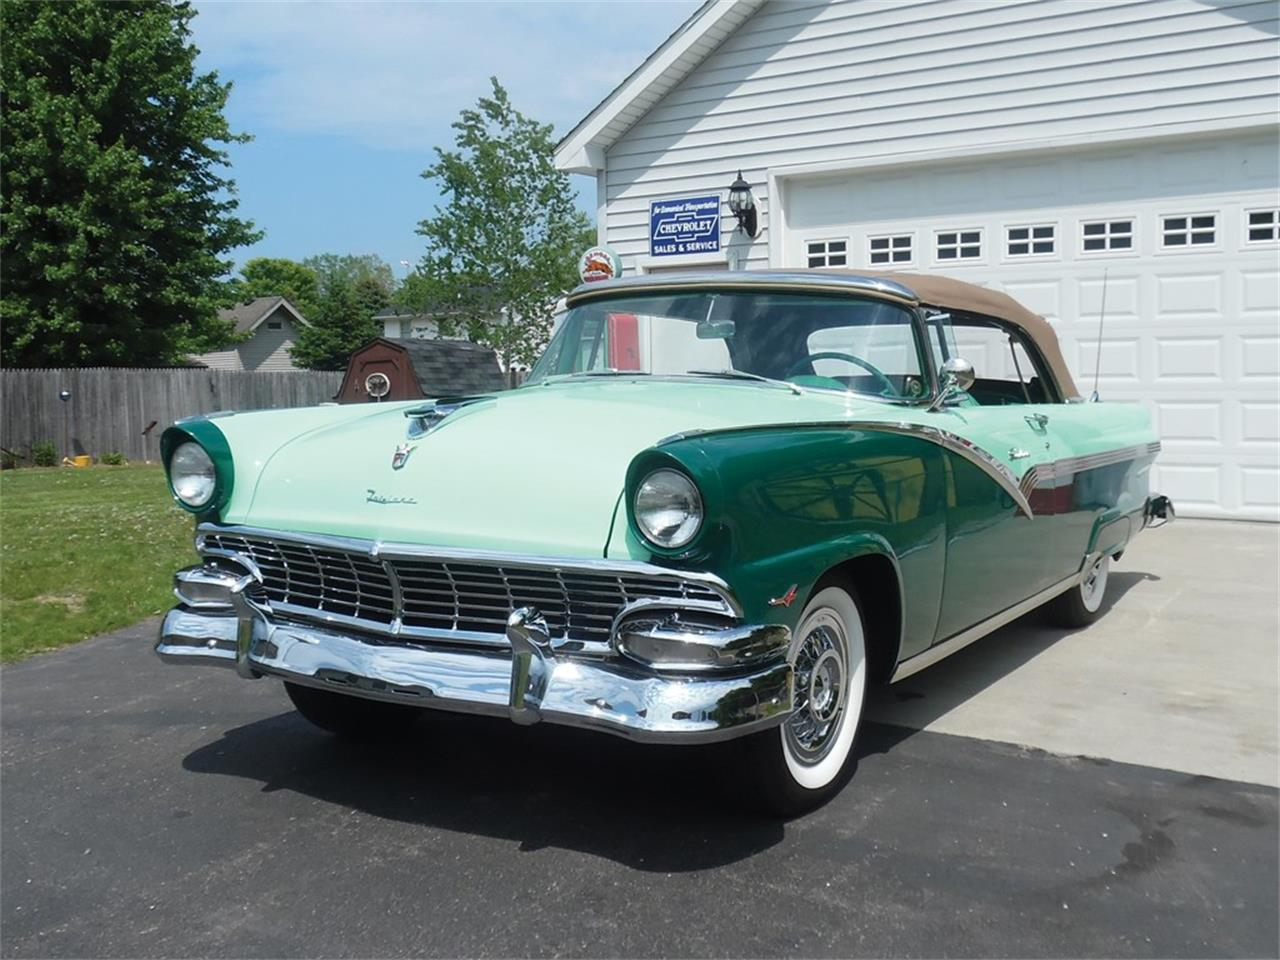 1956 ford fairlane sunliner for sale classiccars com cc 1128080 1956 Ford Crown Victoria Skyliner large picture of classic 1956 fairlane sunliner o6fk